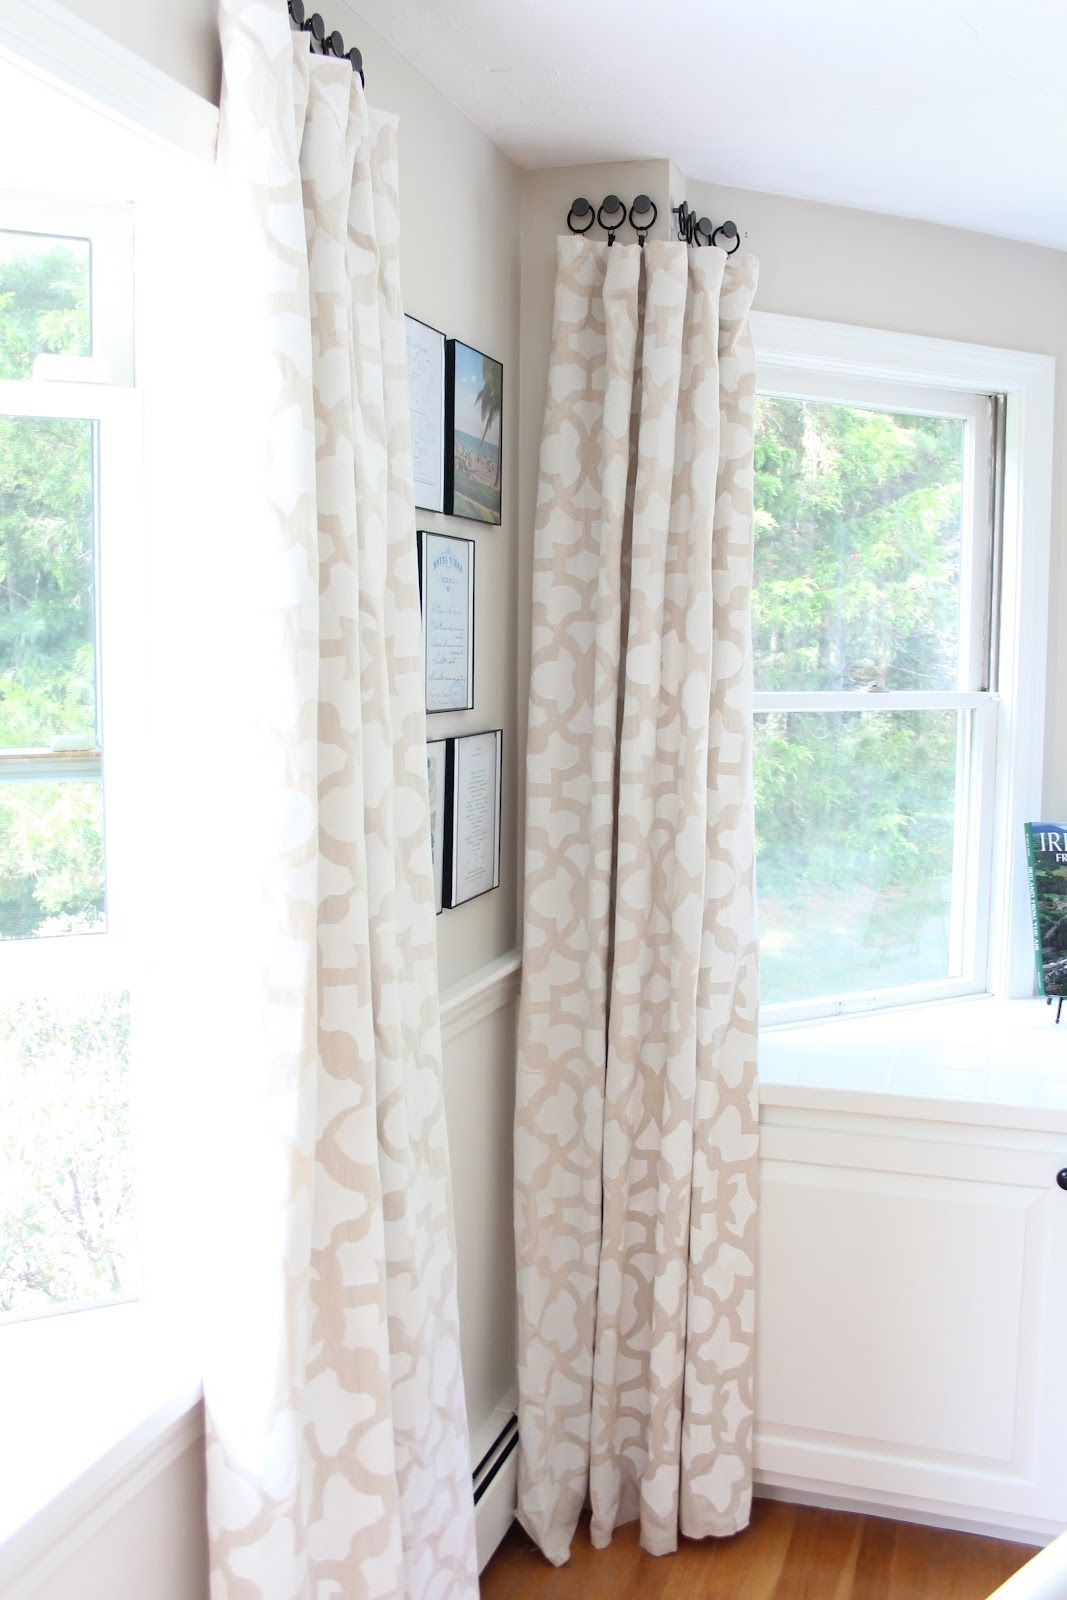 stenciled drop cloth curtain tutorial | hang curtains, window and room